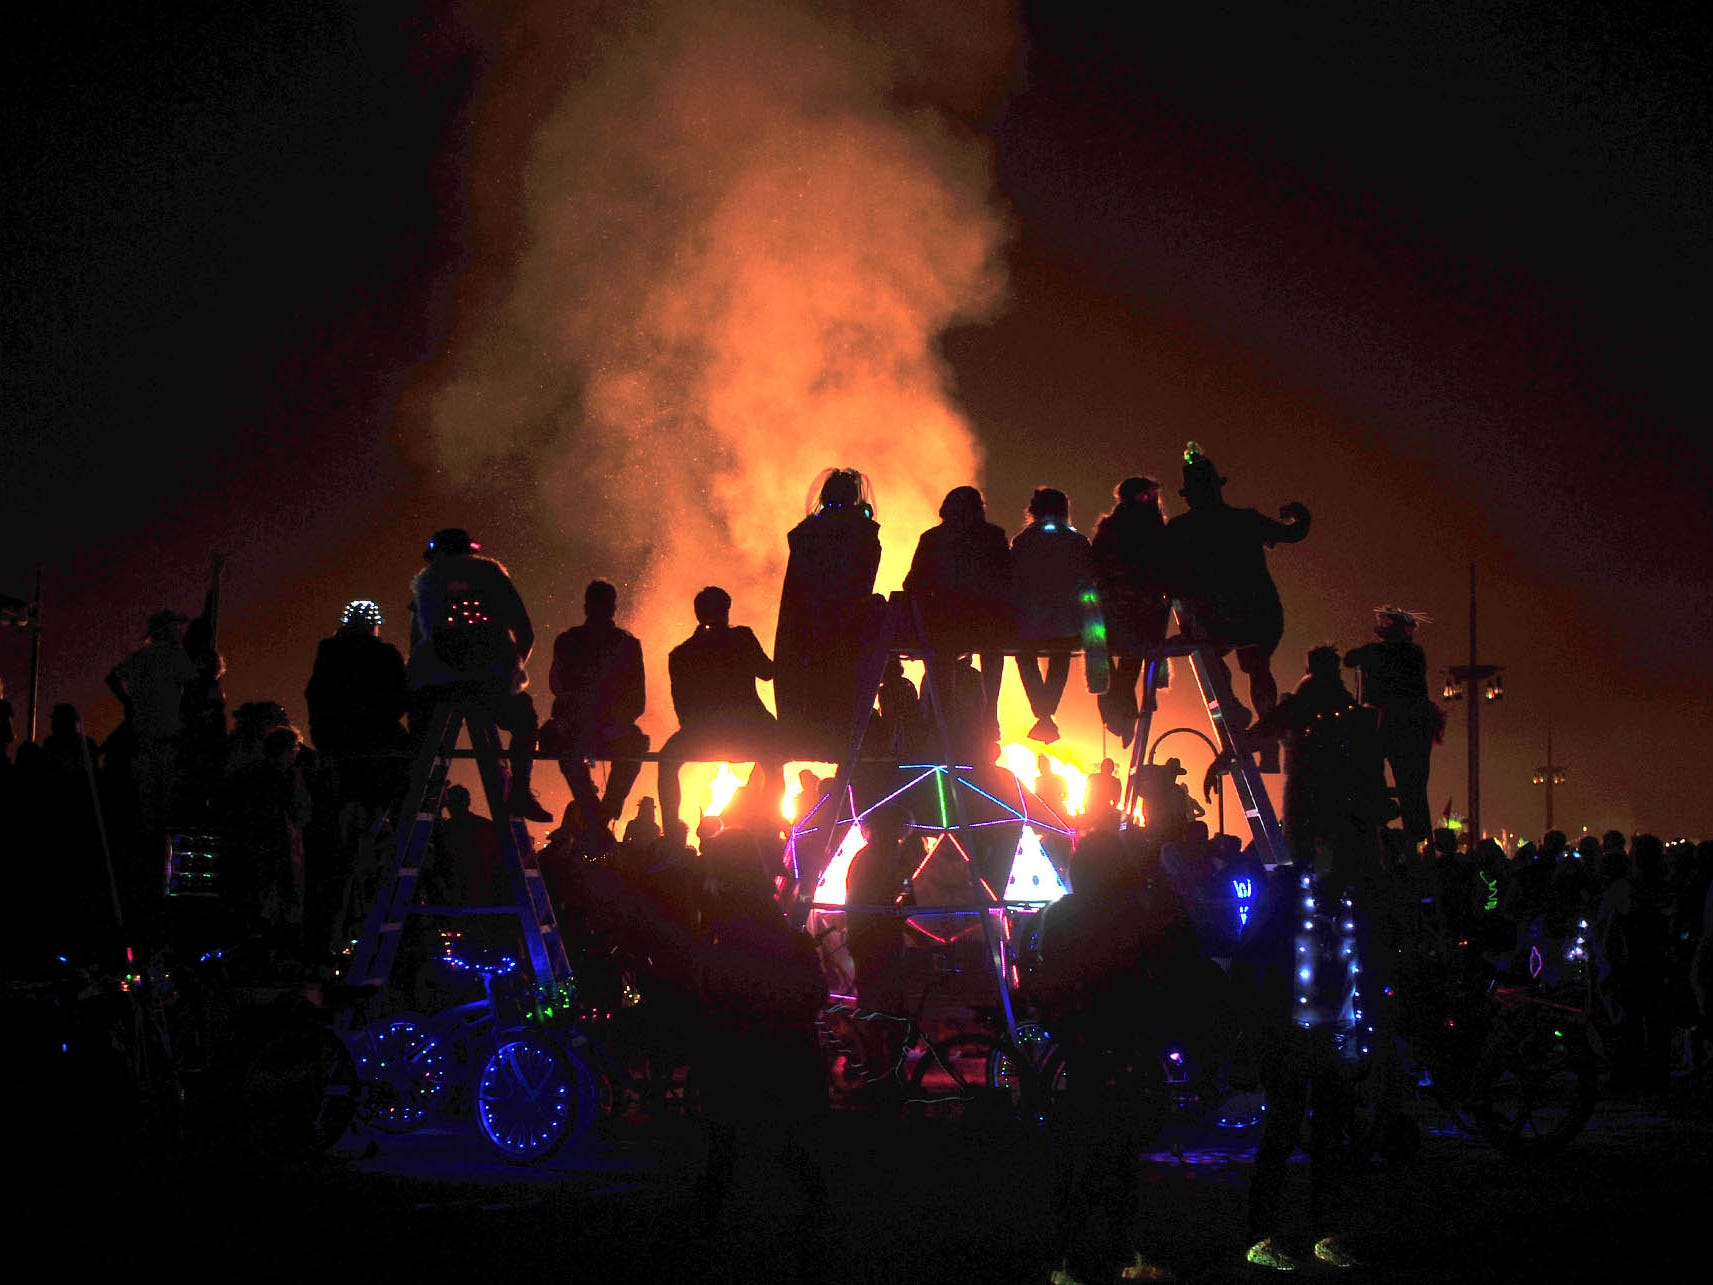 Thousands of people watched the Burning Man effigy burn Saturday night at Burning Man 2018.